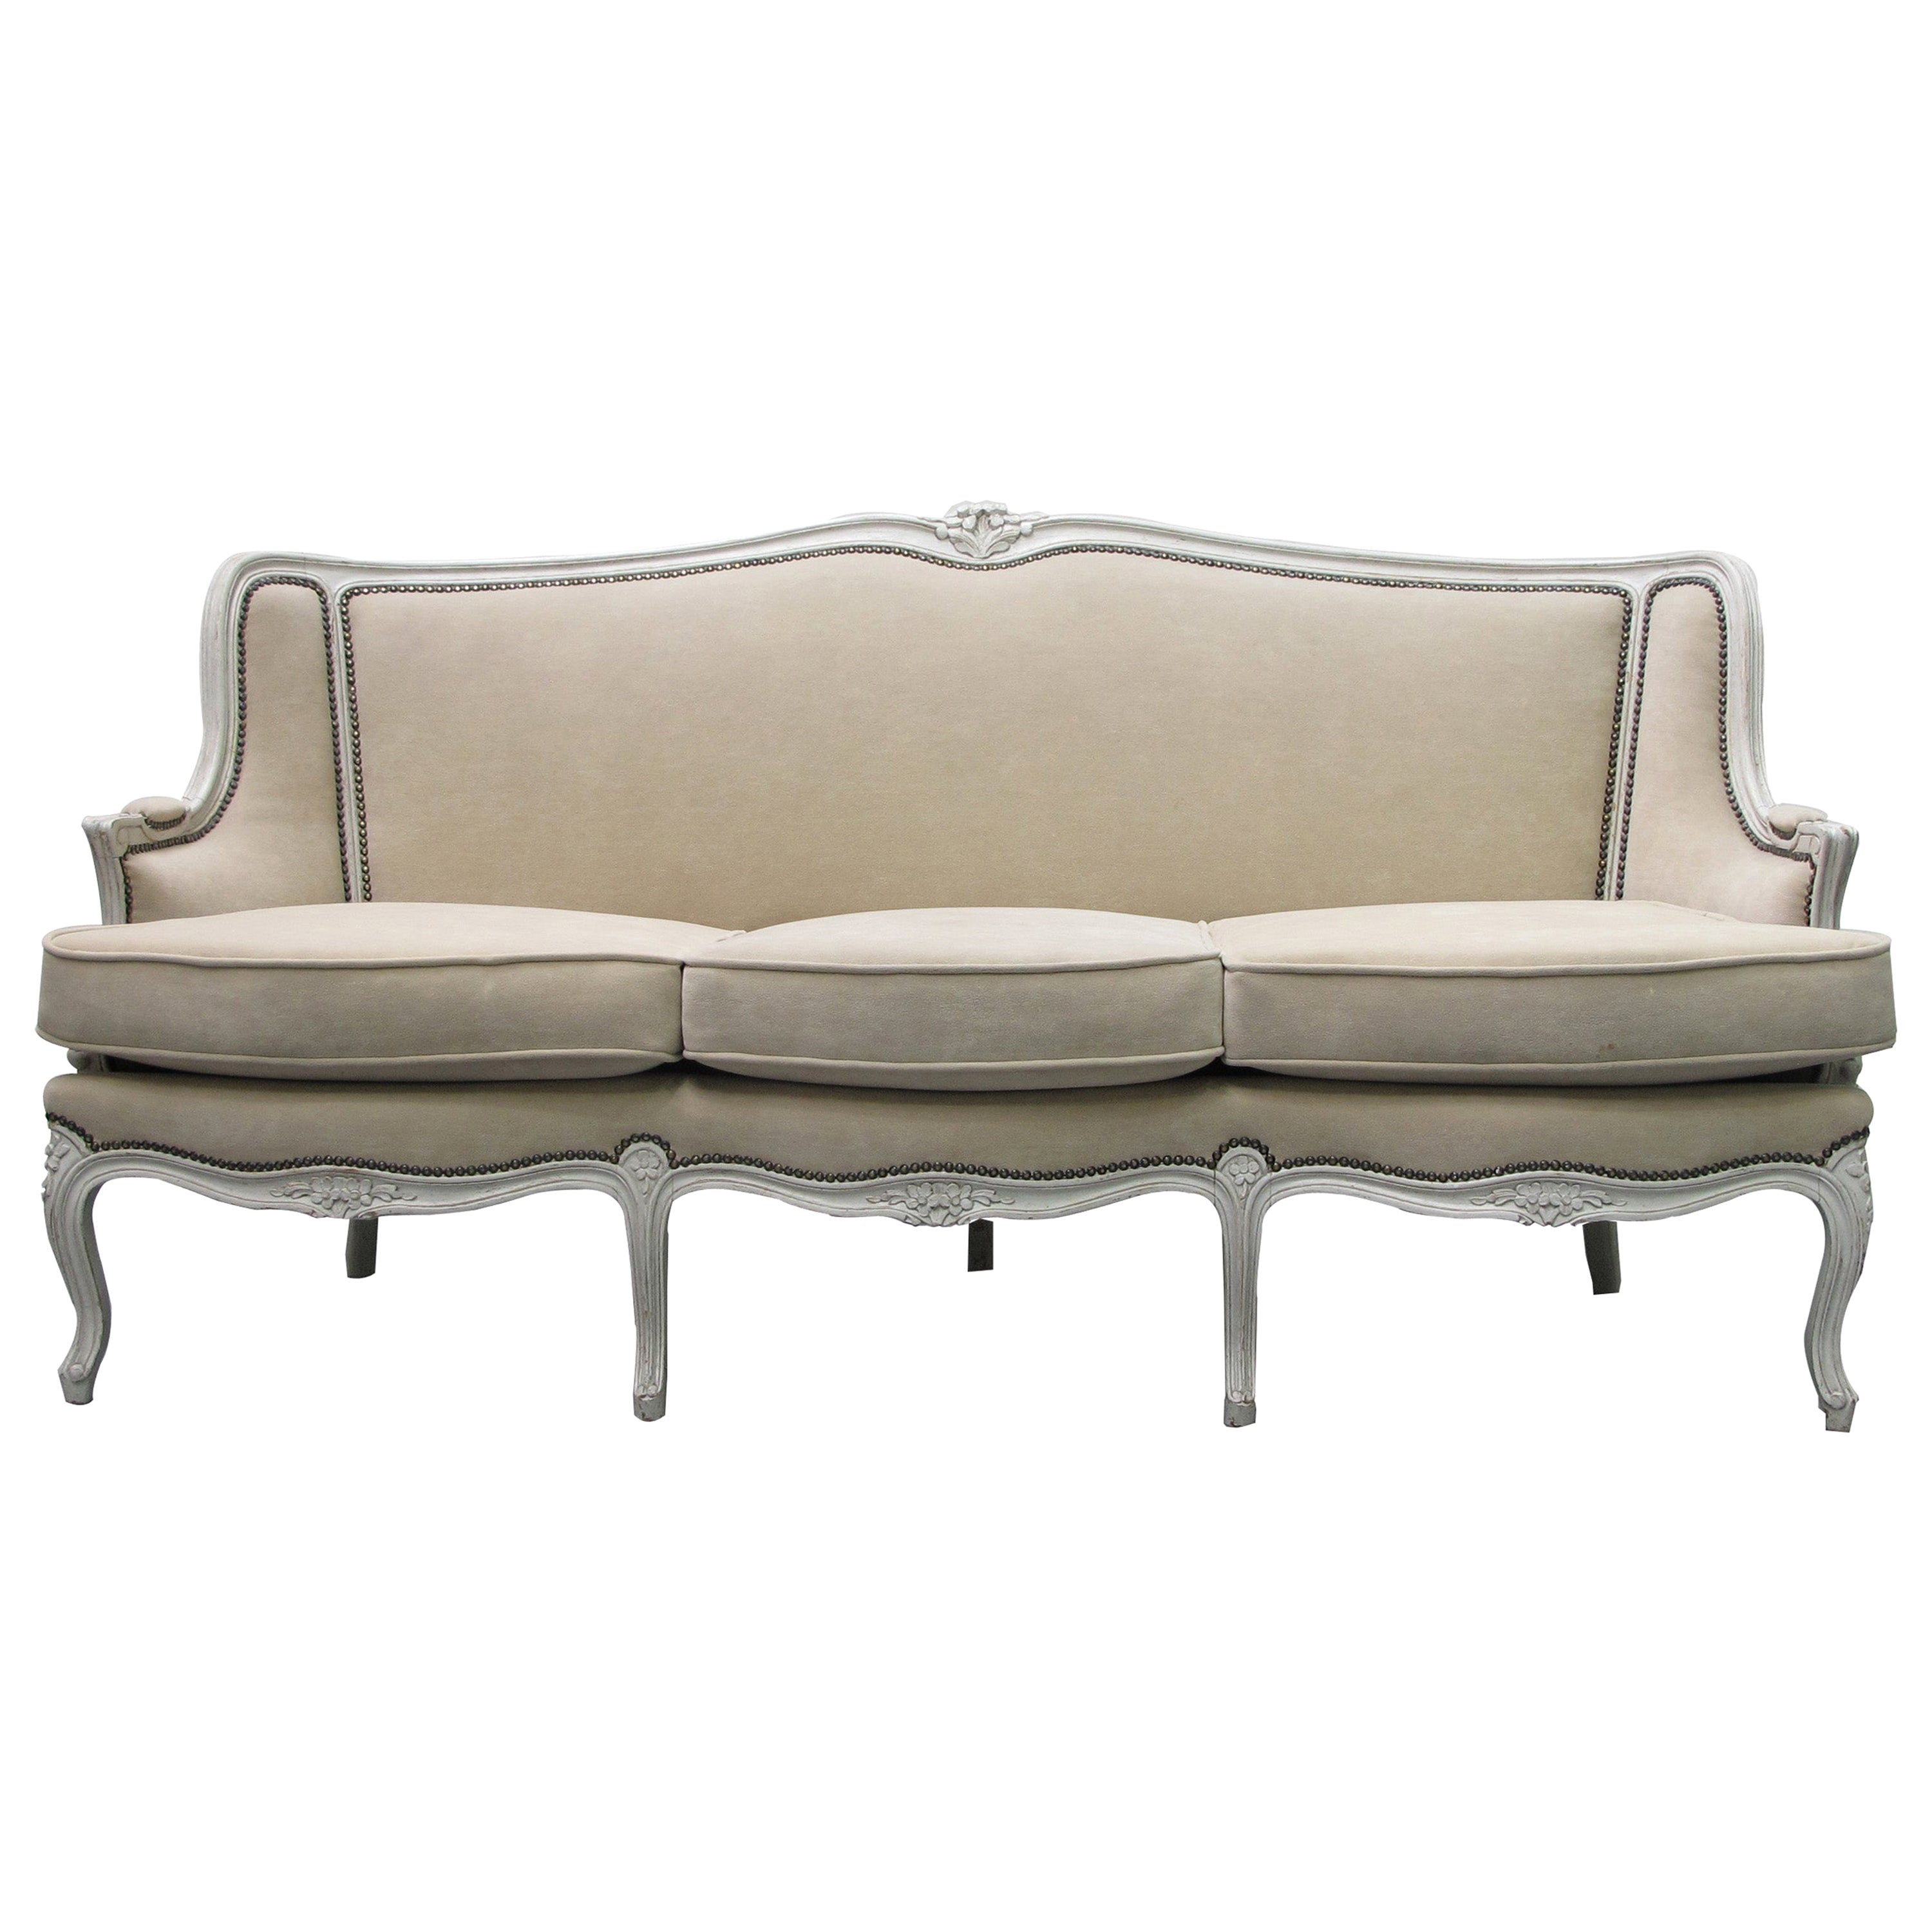 Early 20th Century French Three-Seat Sofa, Louis XV Style with Painted Frame